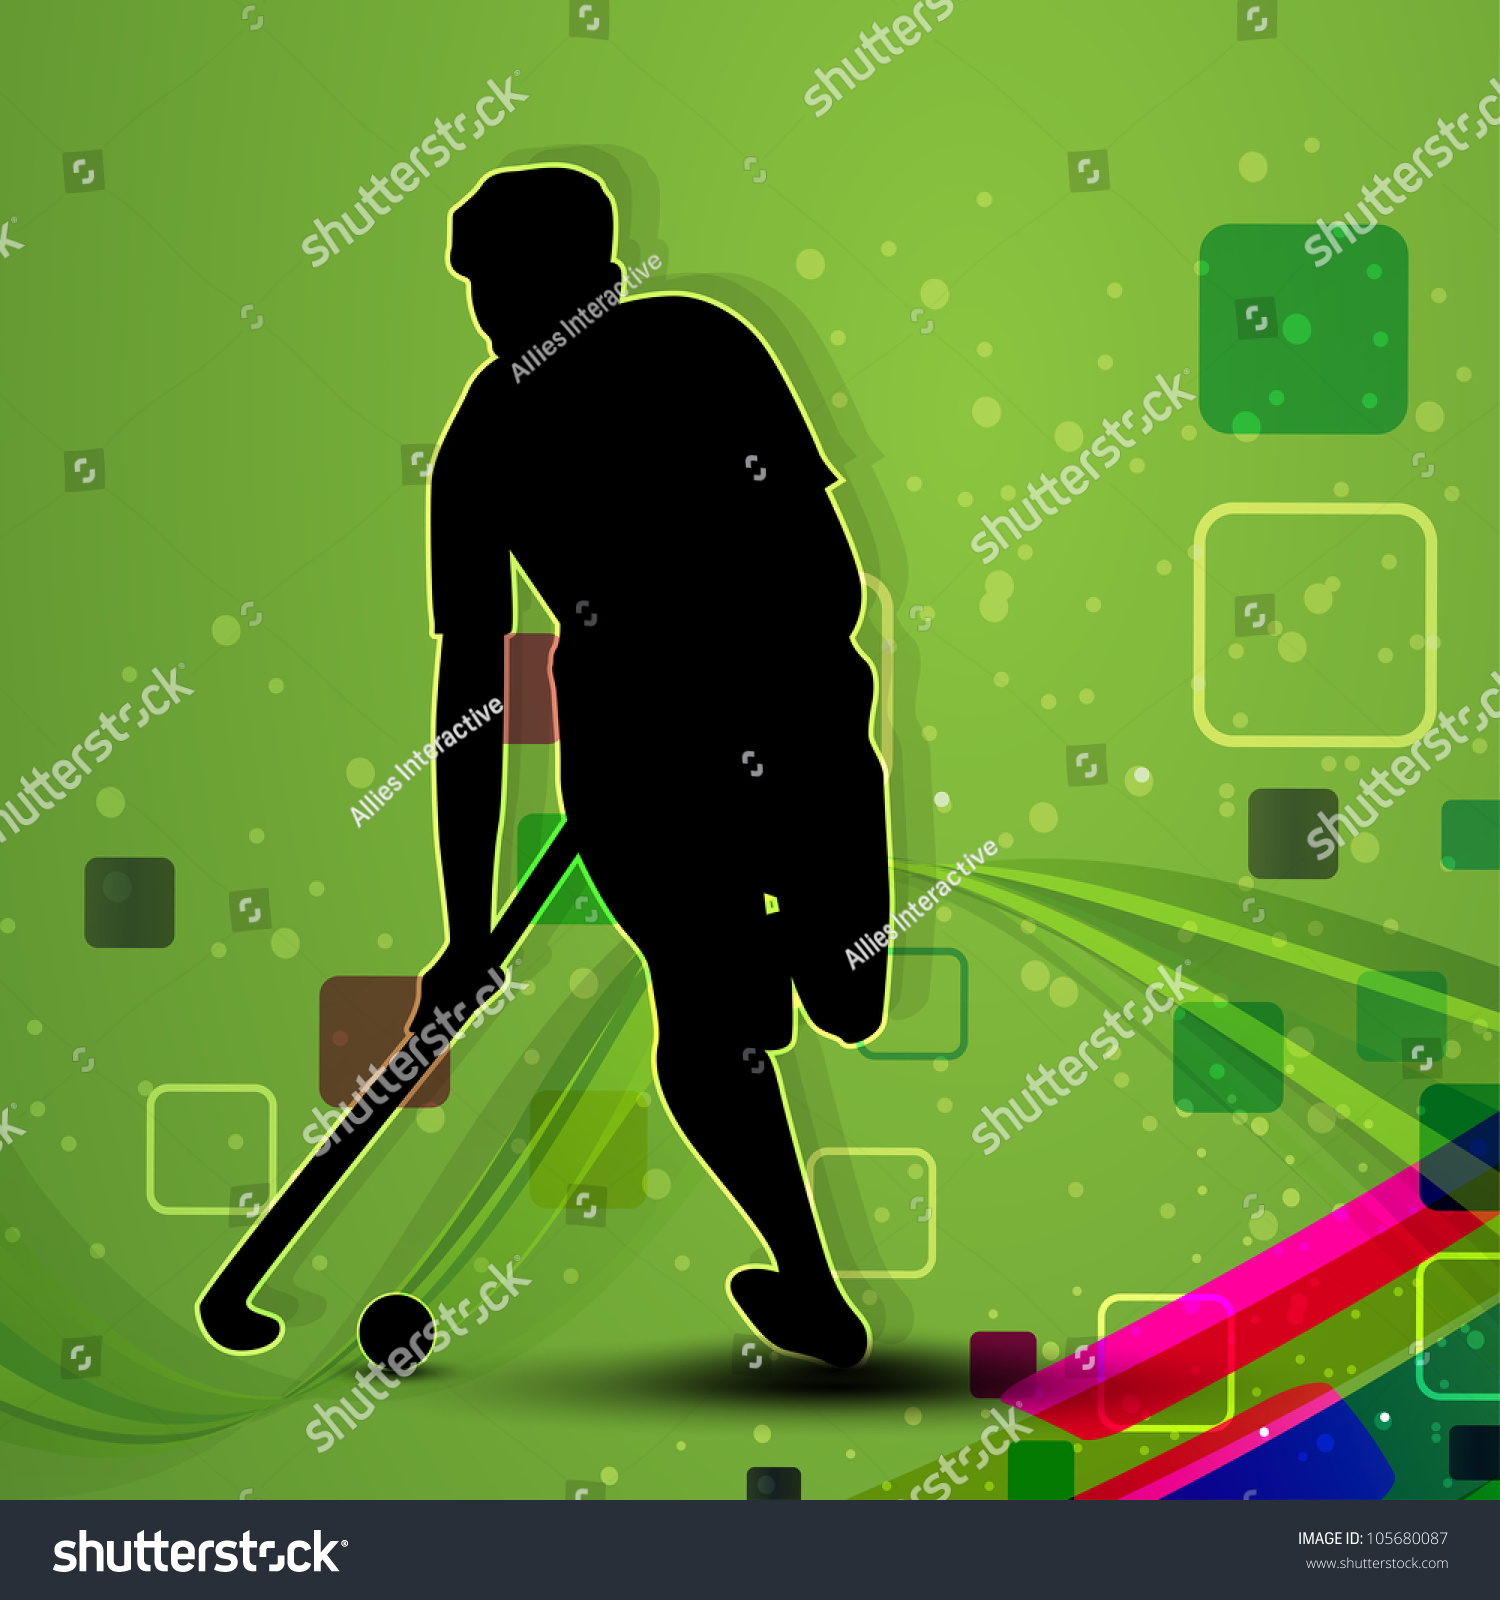 Silhouette Of A Hockey Player With Hockey Stick And Ball